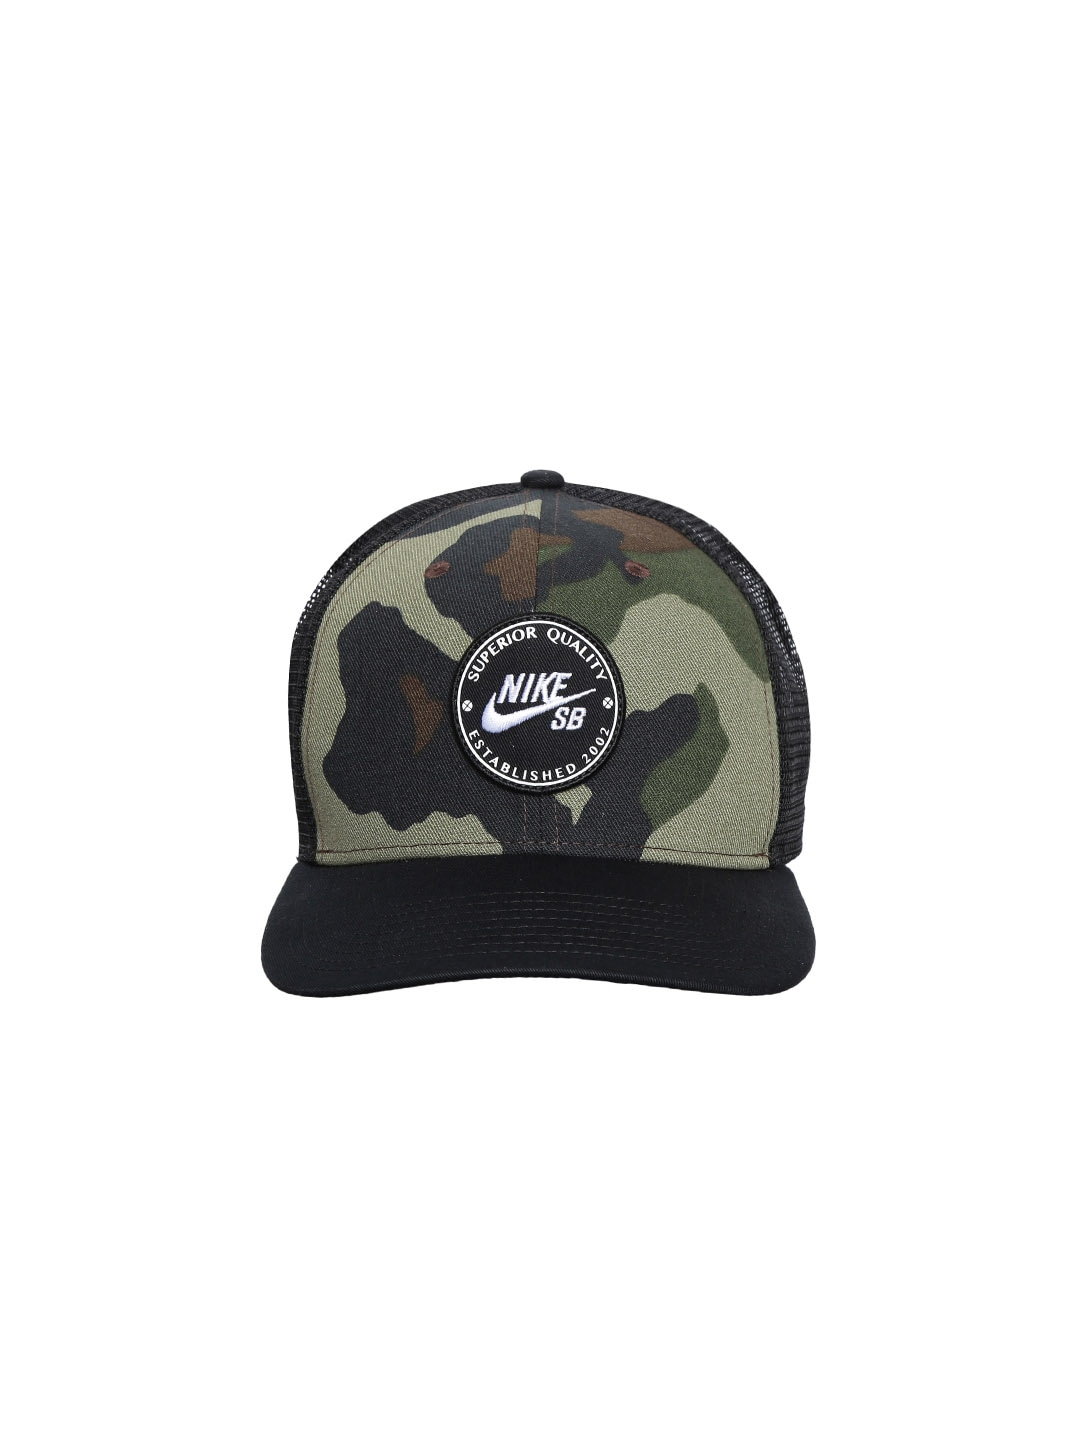 fa2710df542 low cost nike hat model 663d4 5be46